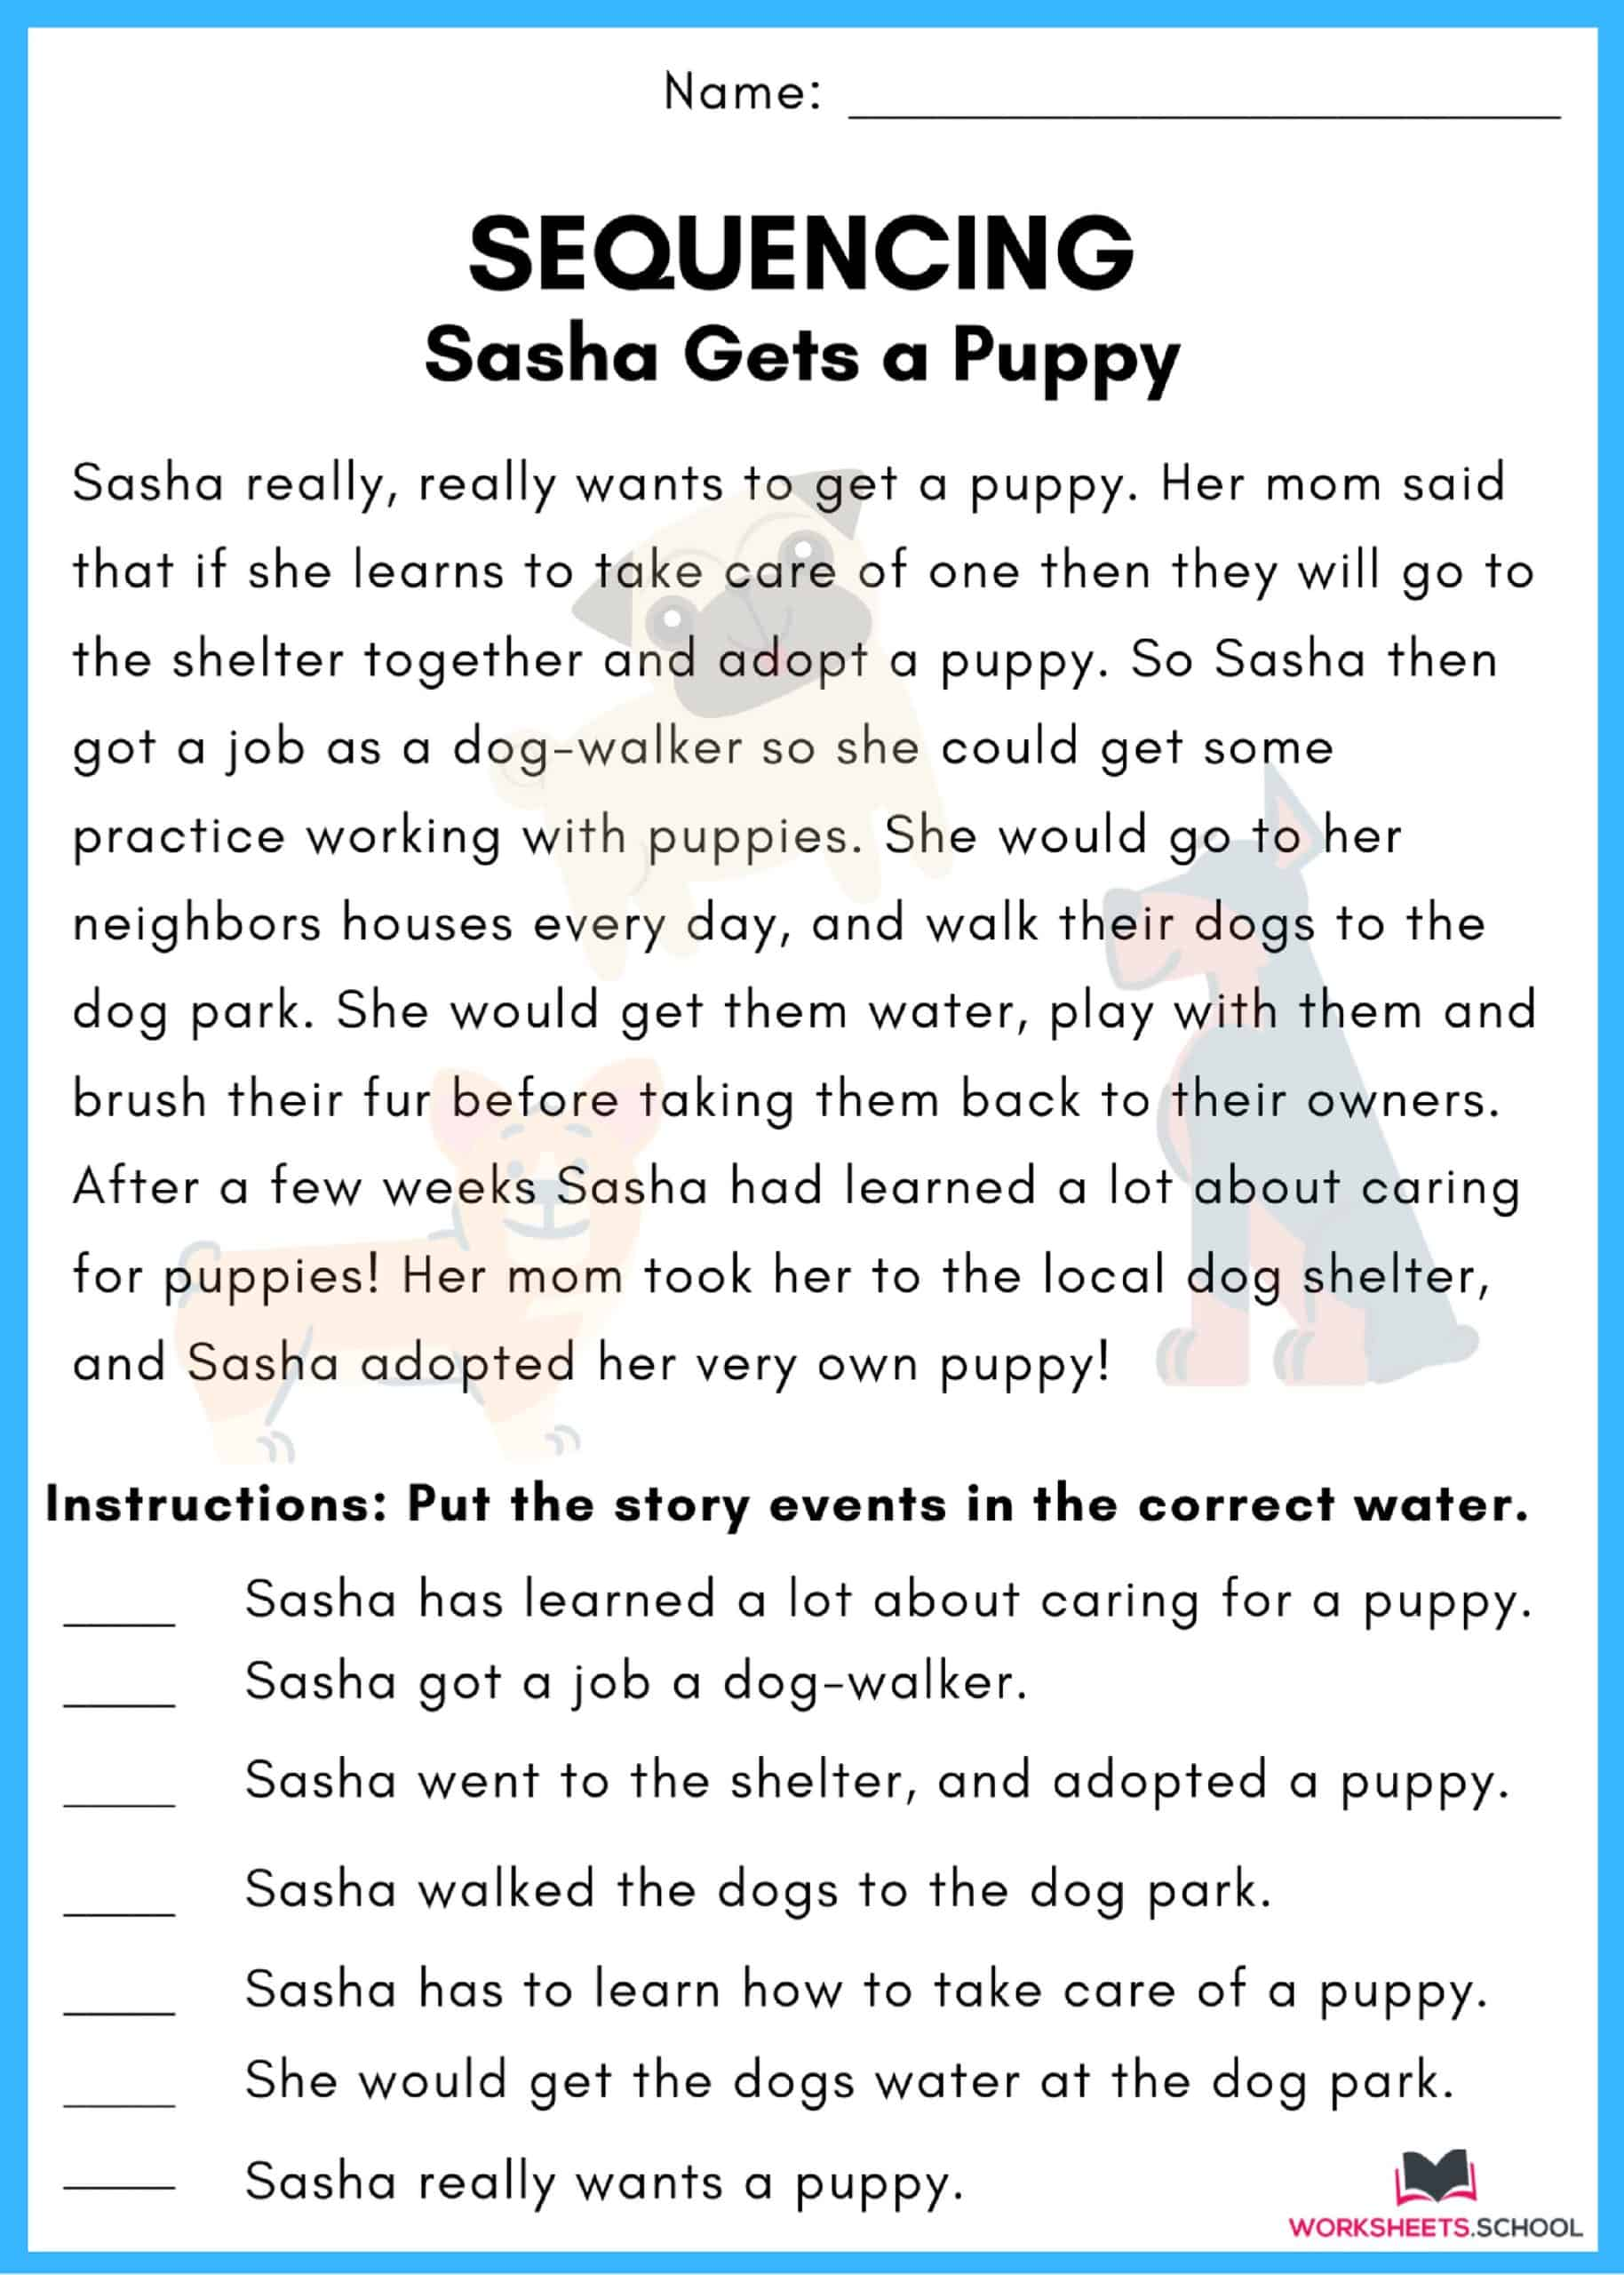 Sequencing Worksheet - Puppy